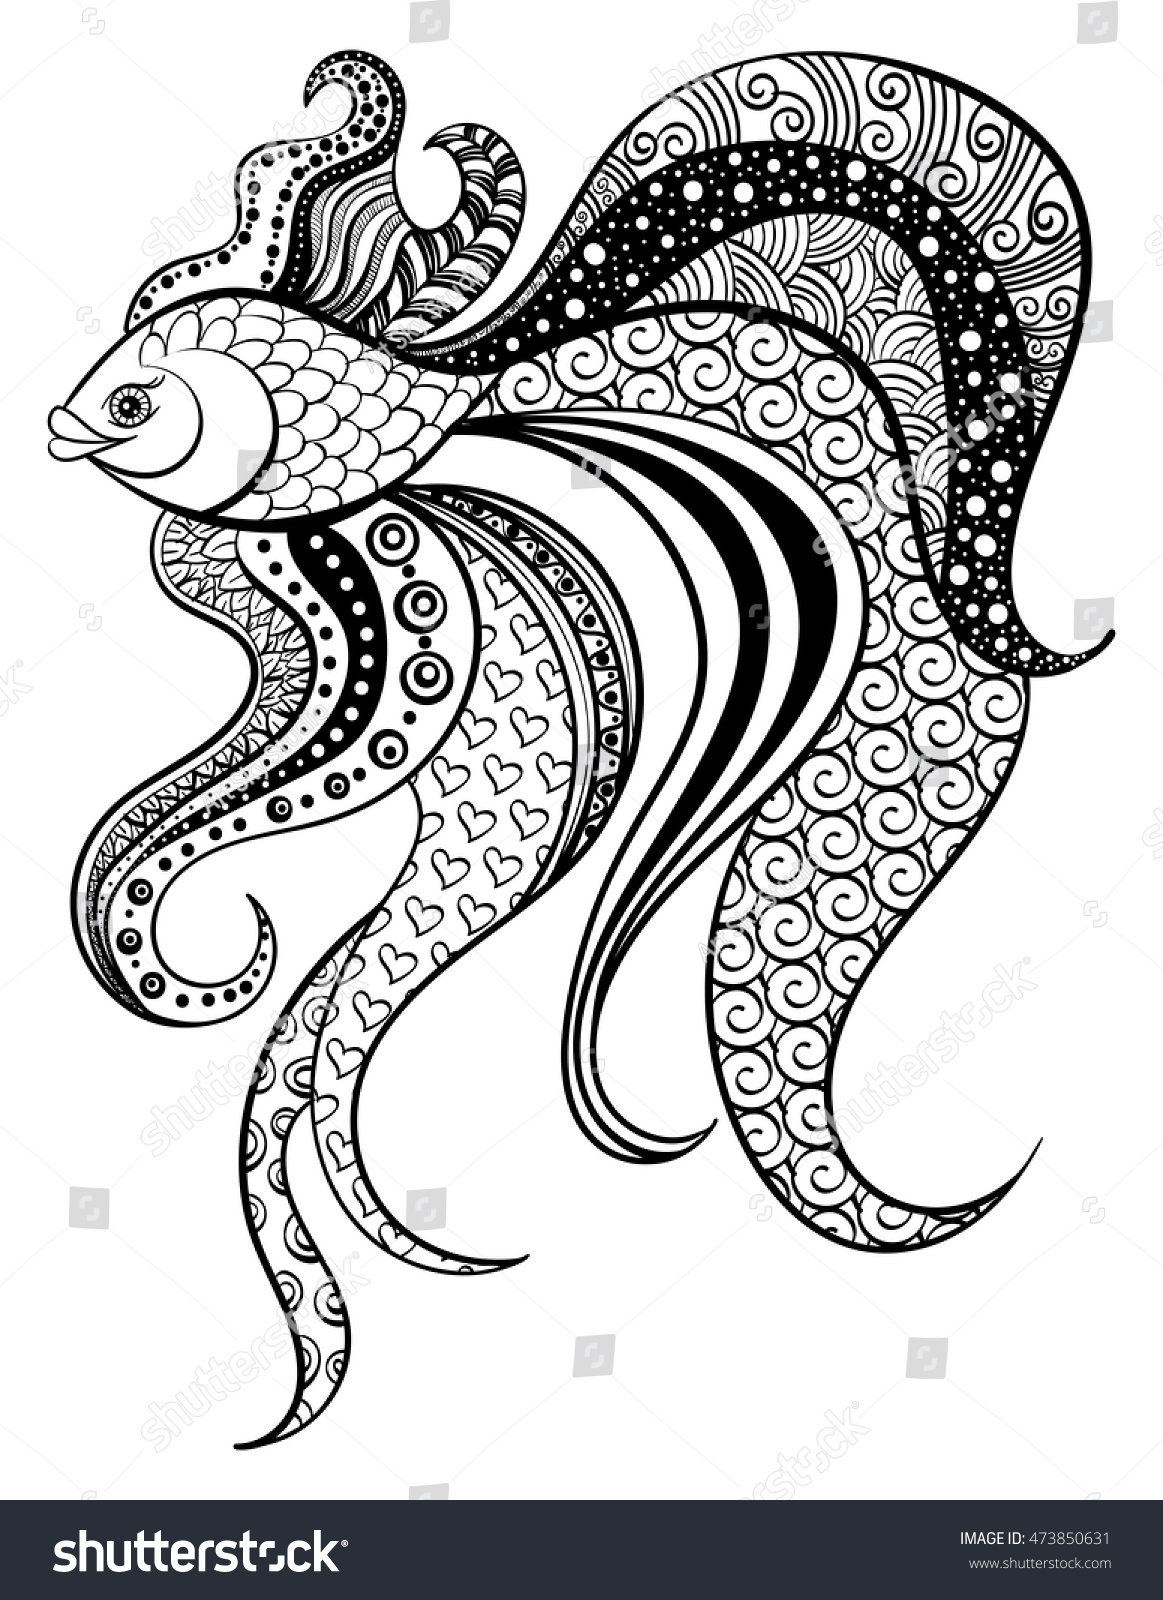 fish zentangle adult coloring page doodle vector illustration hand drawn pattern zen